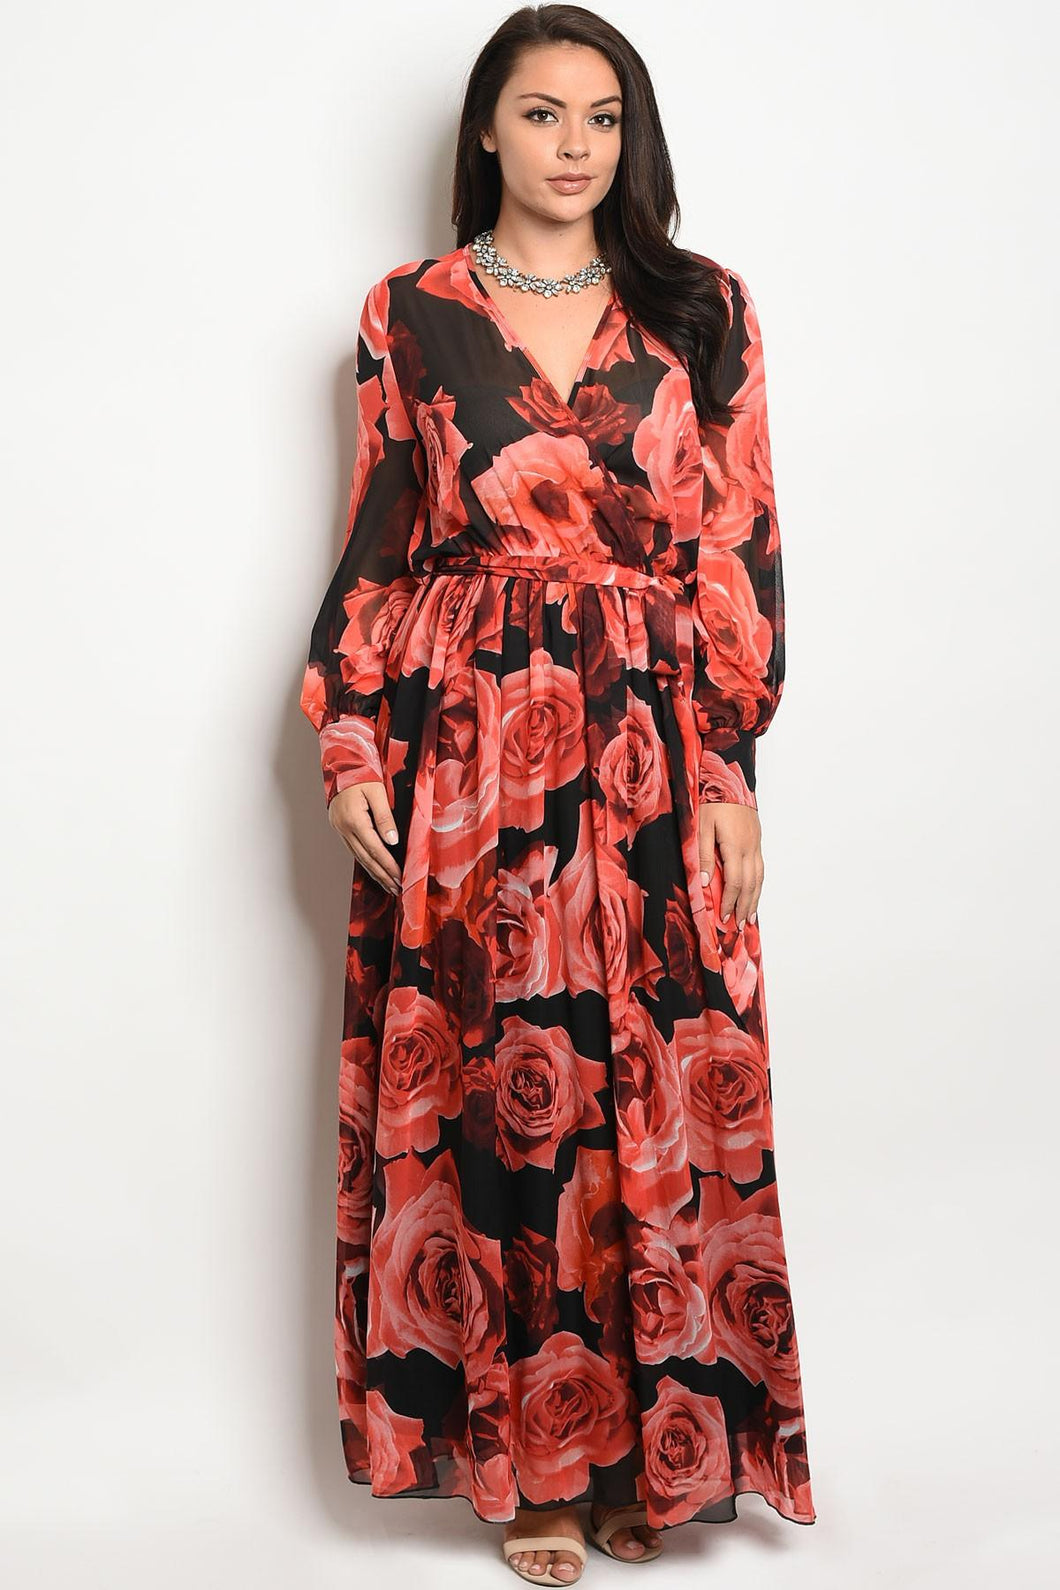 Ladies fashion plus size long sleeve printed chiffon maxi dress with a v neckline